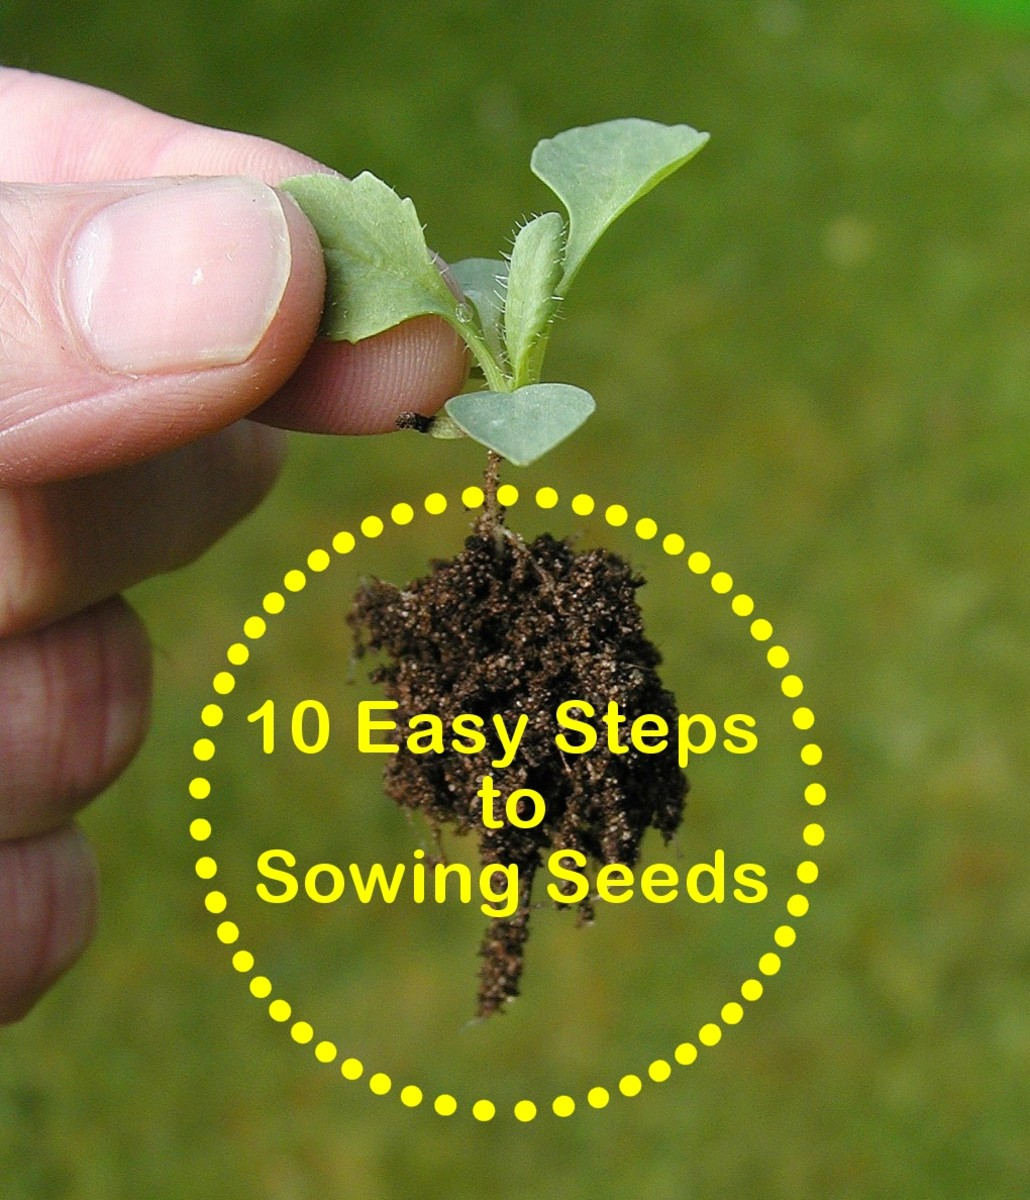 Gardening For Beginners 10 Easy Steps To Sowing Seeds Dengarden Germination Diagram Kids Seed In